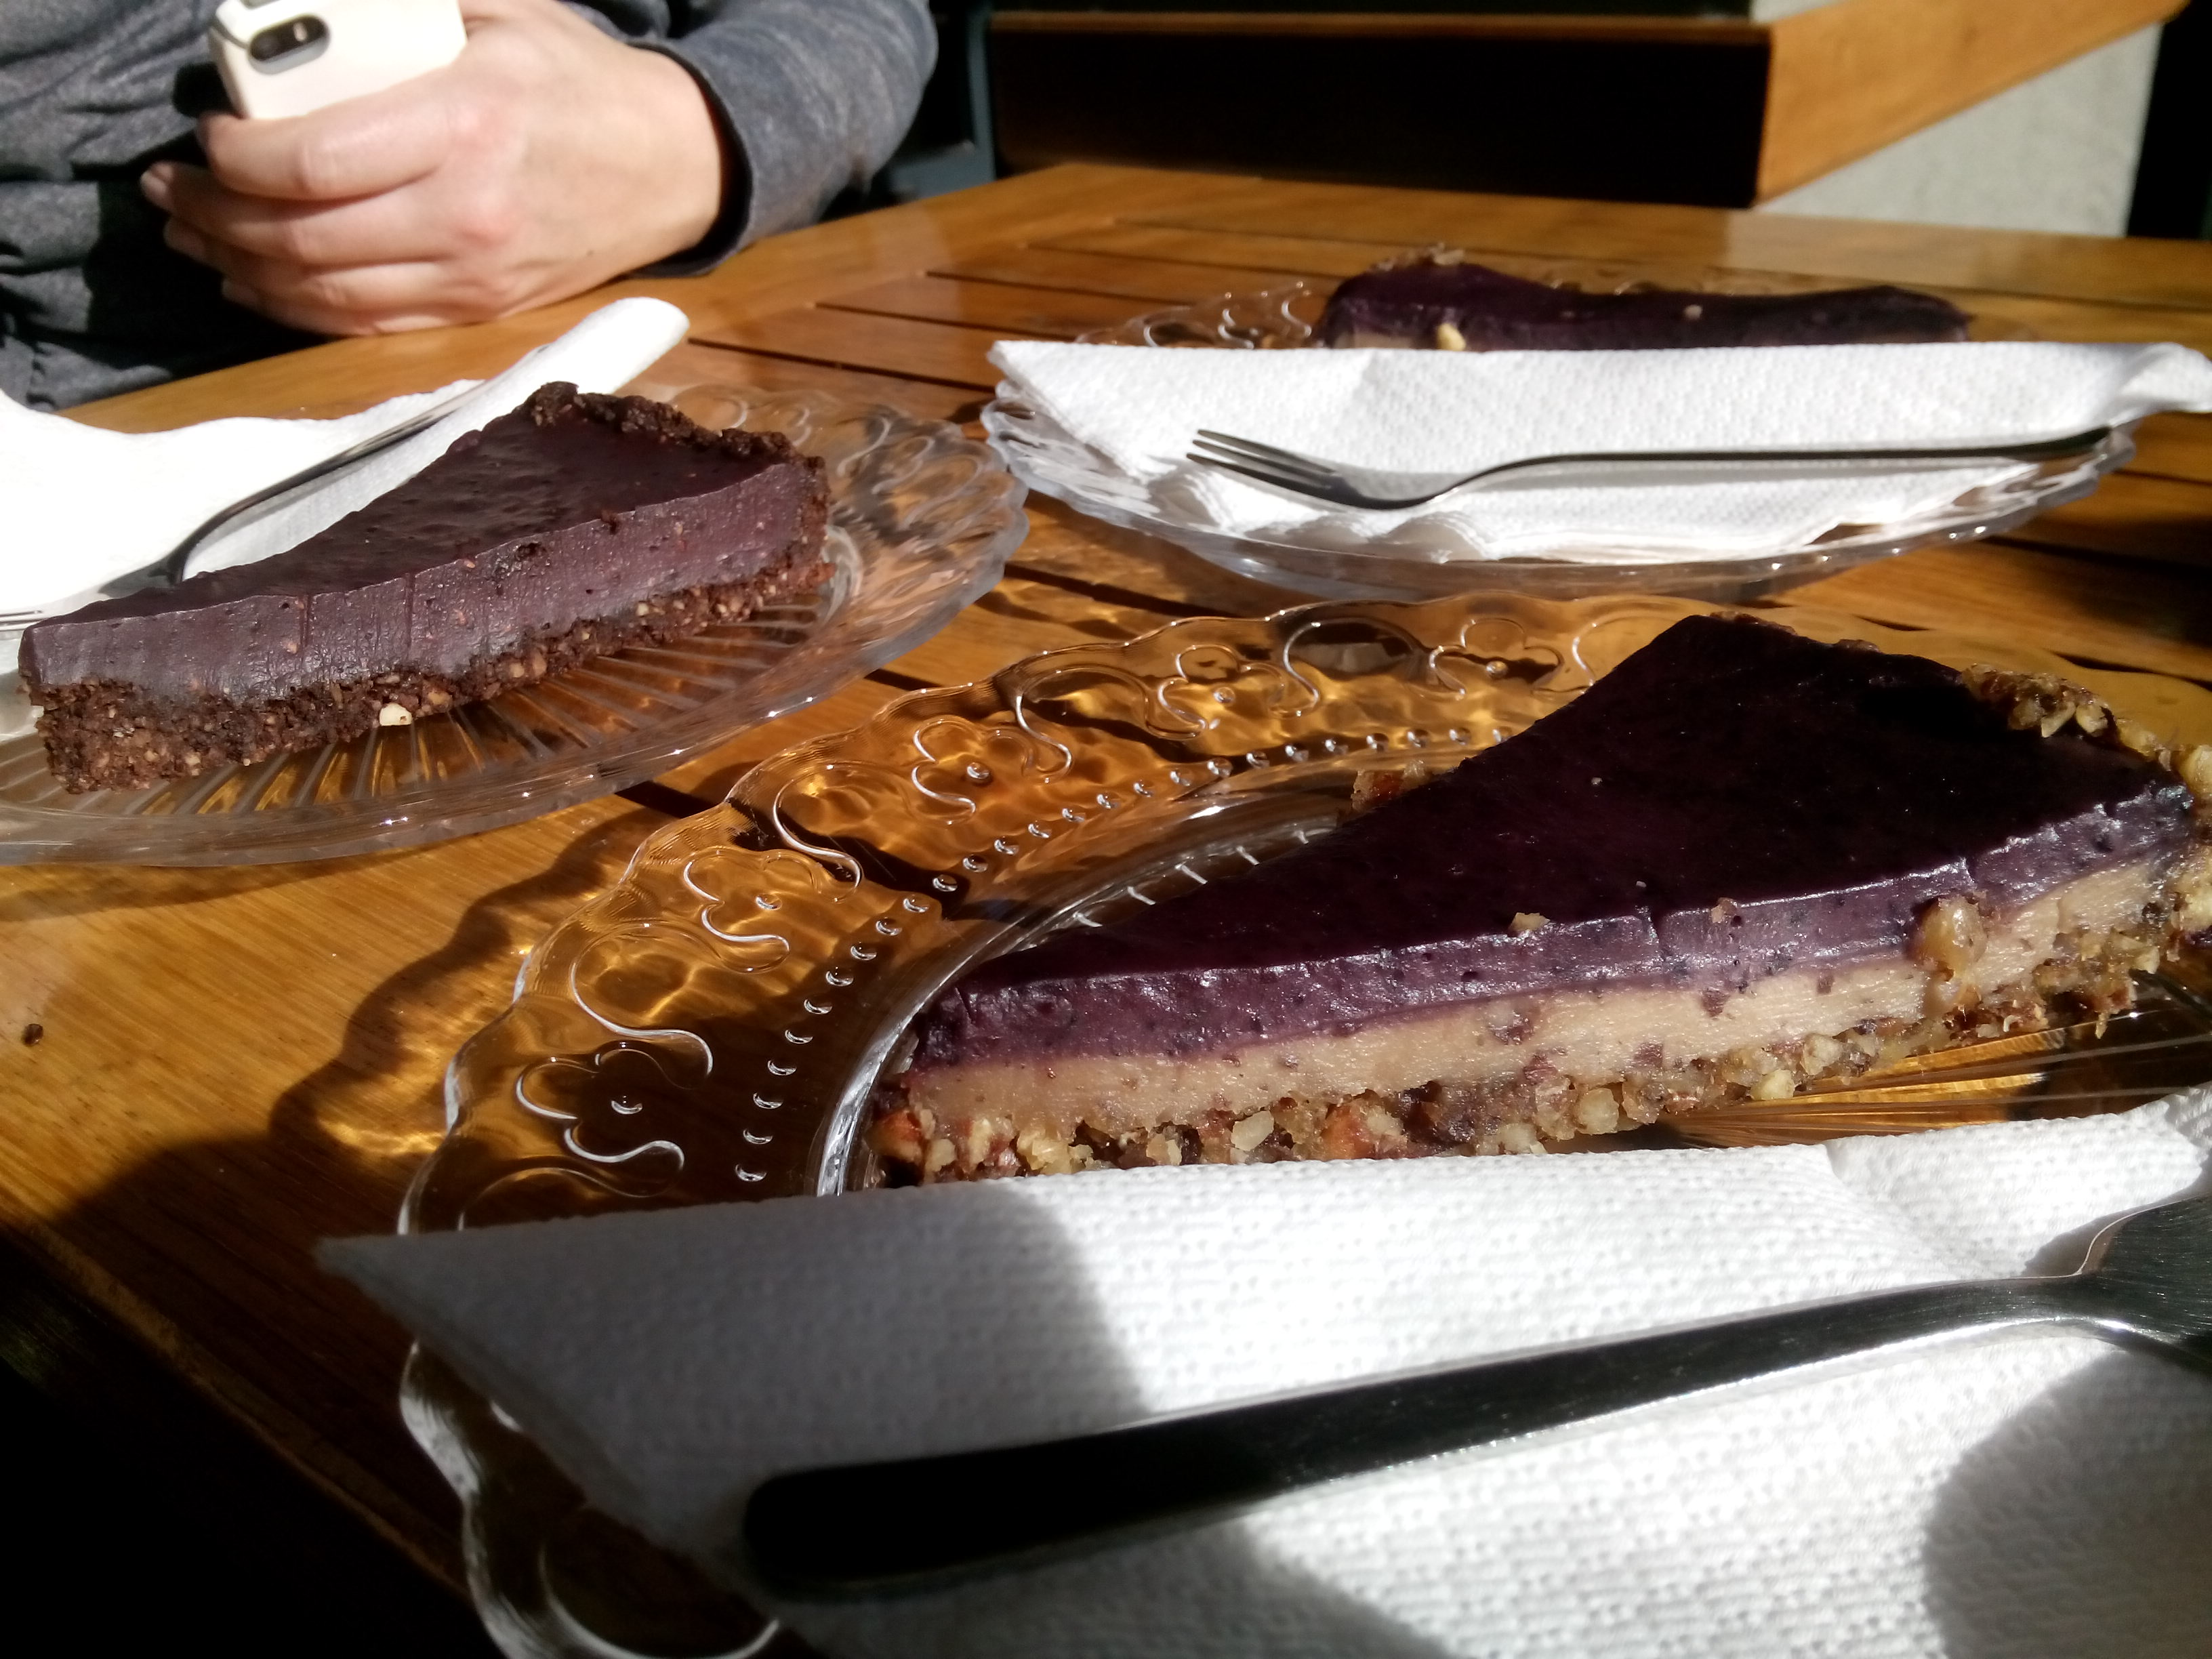 Purple triangluar shaped slices of cake on glass plates